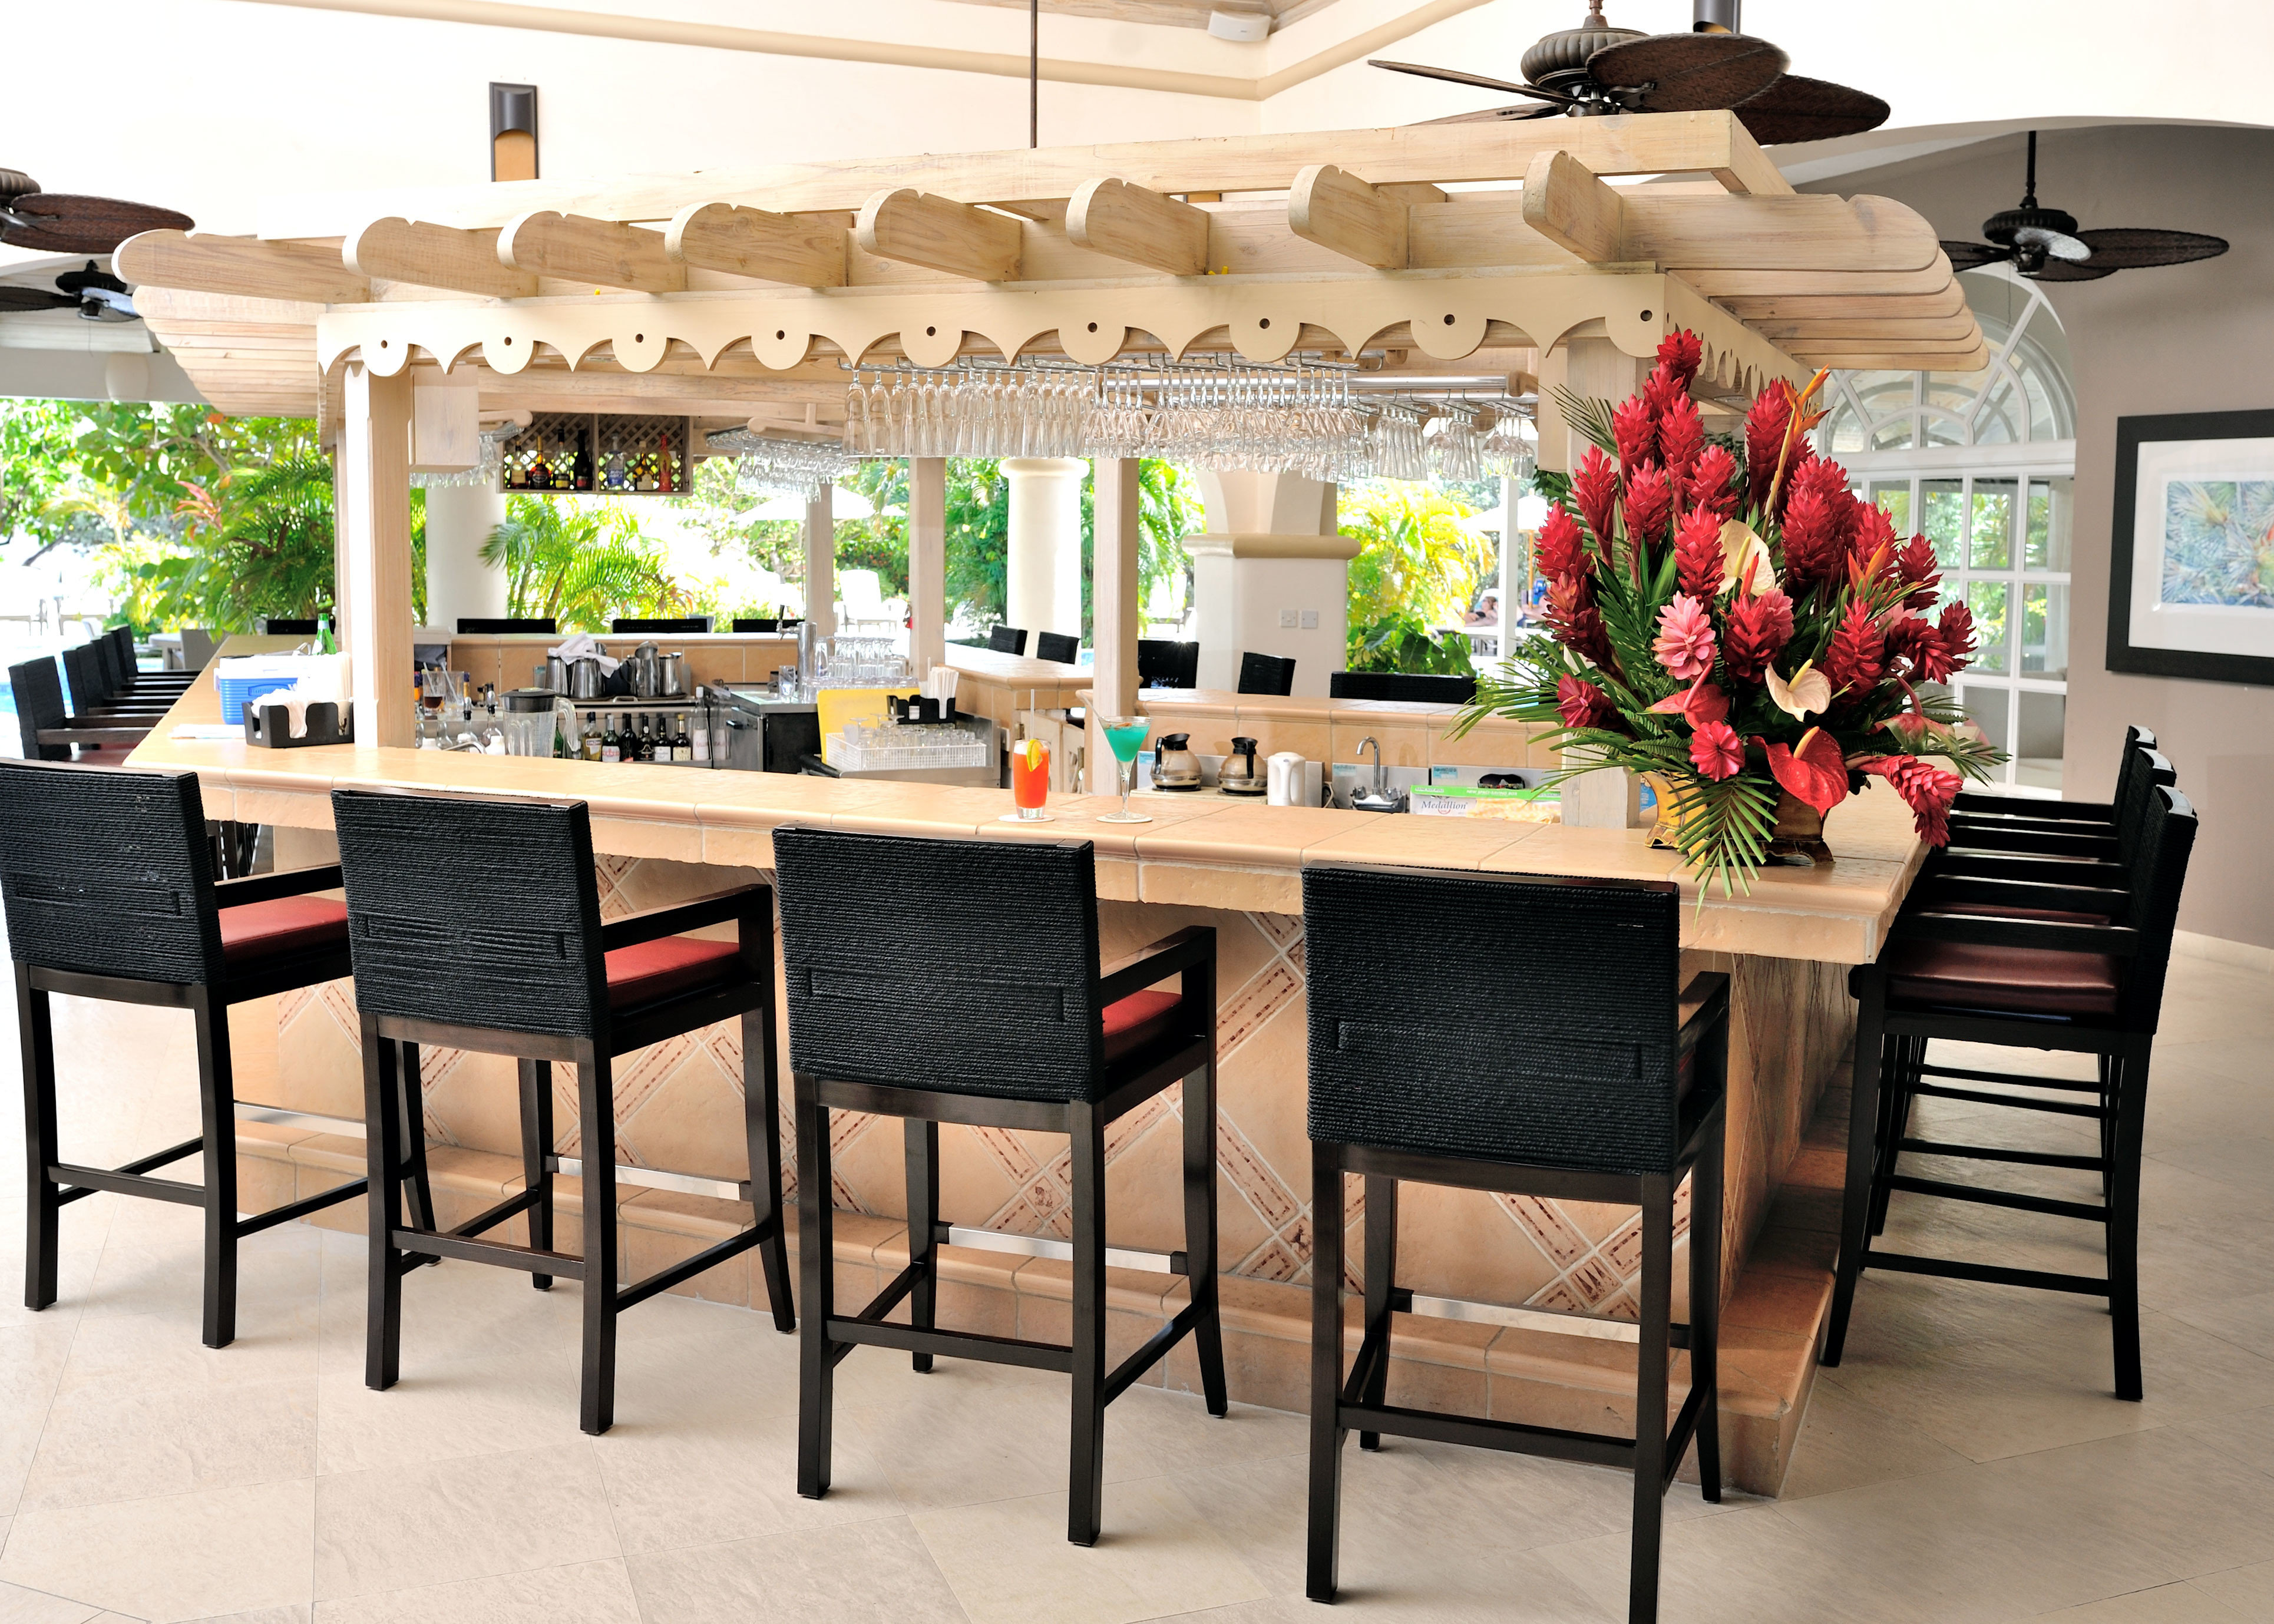 Bar Dining Drink Eat chair floristry home restaurant dining table